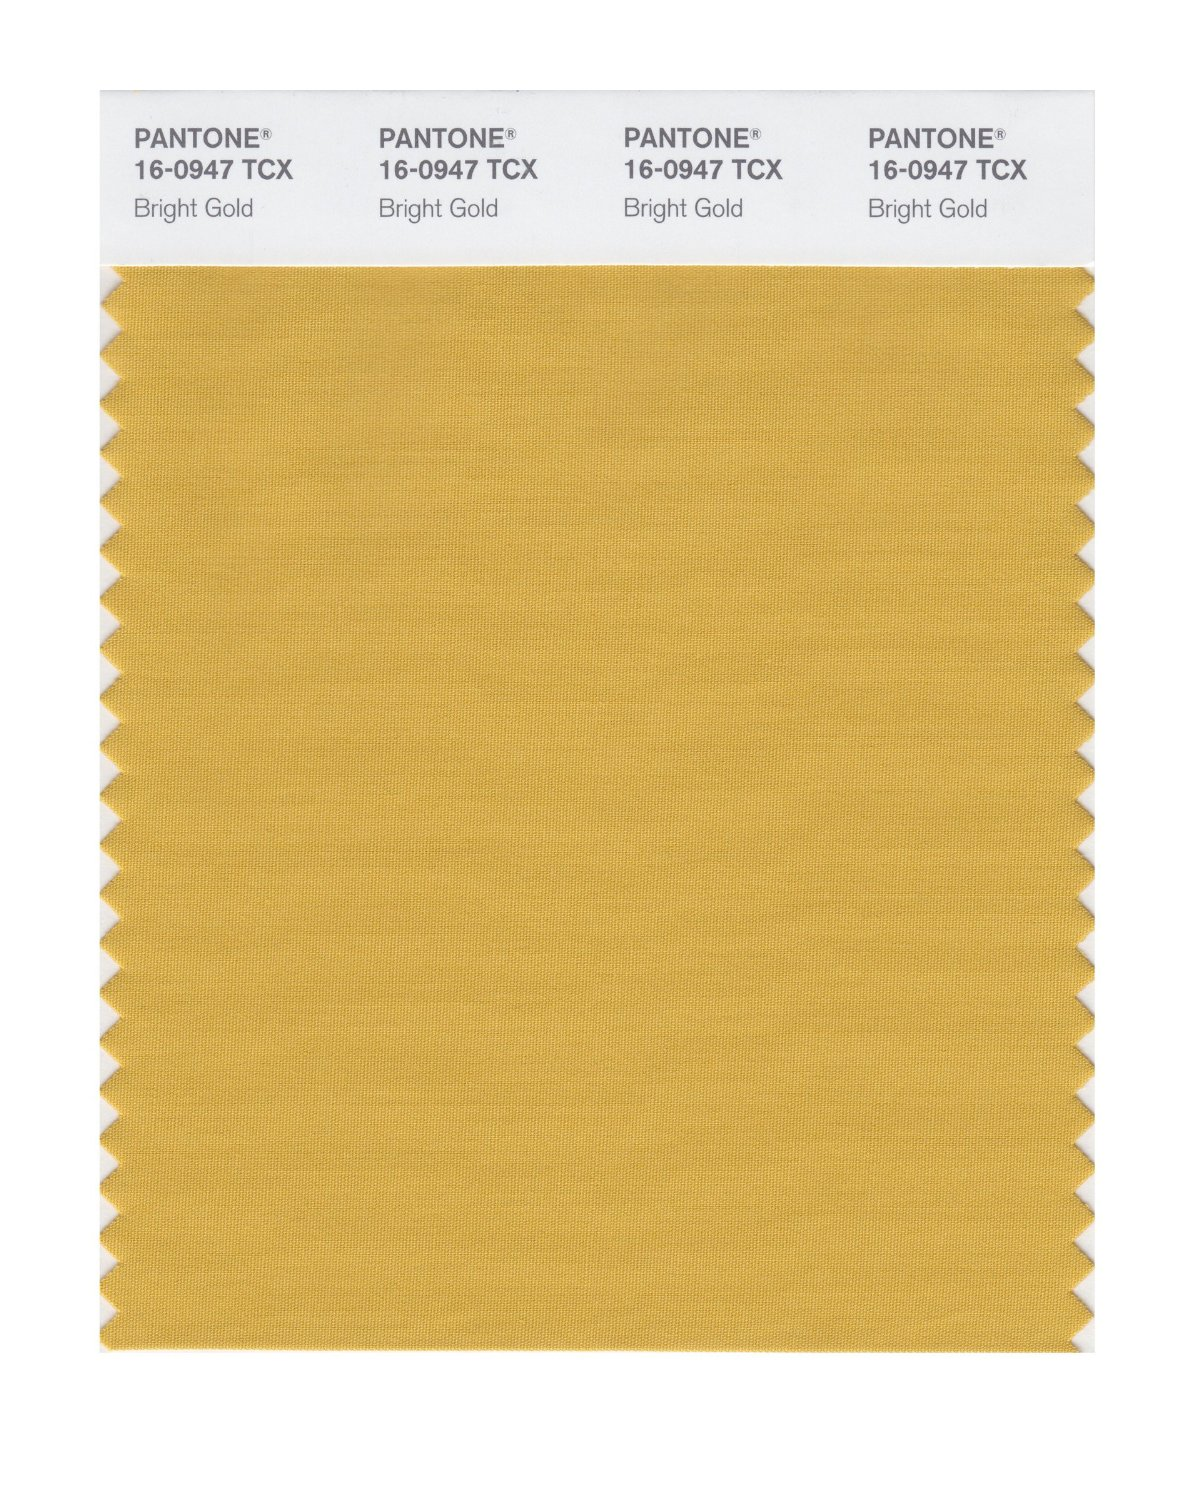 Pantone Smart Swatch 16-0947 Bright Gold